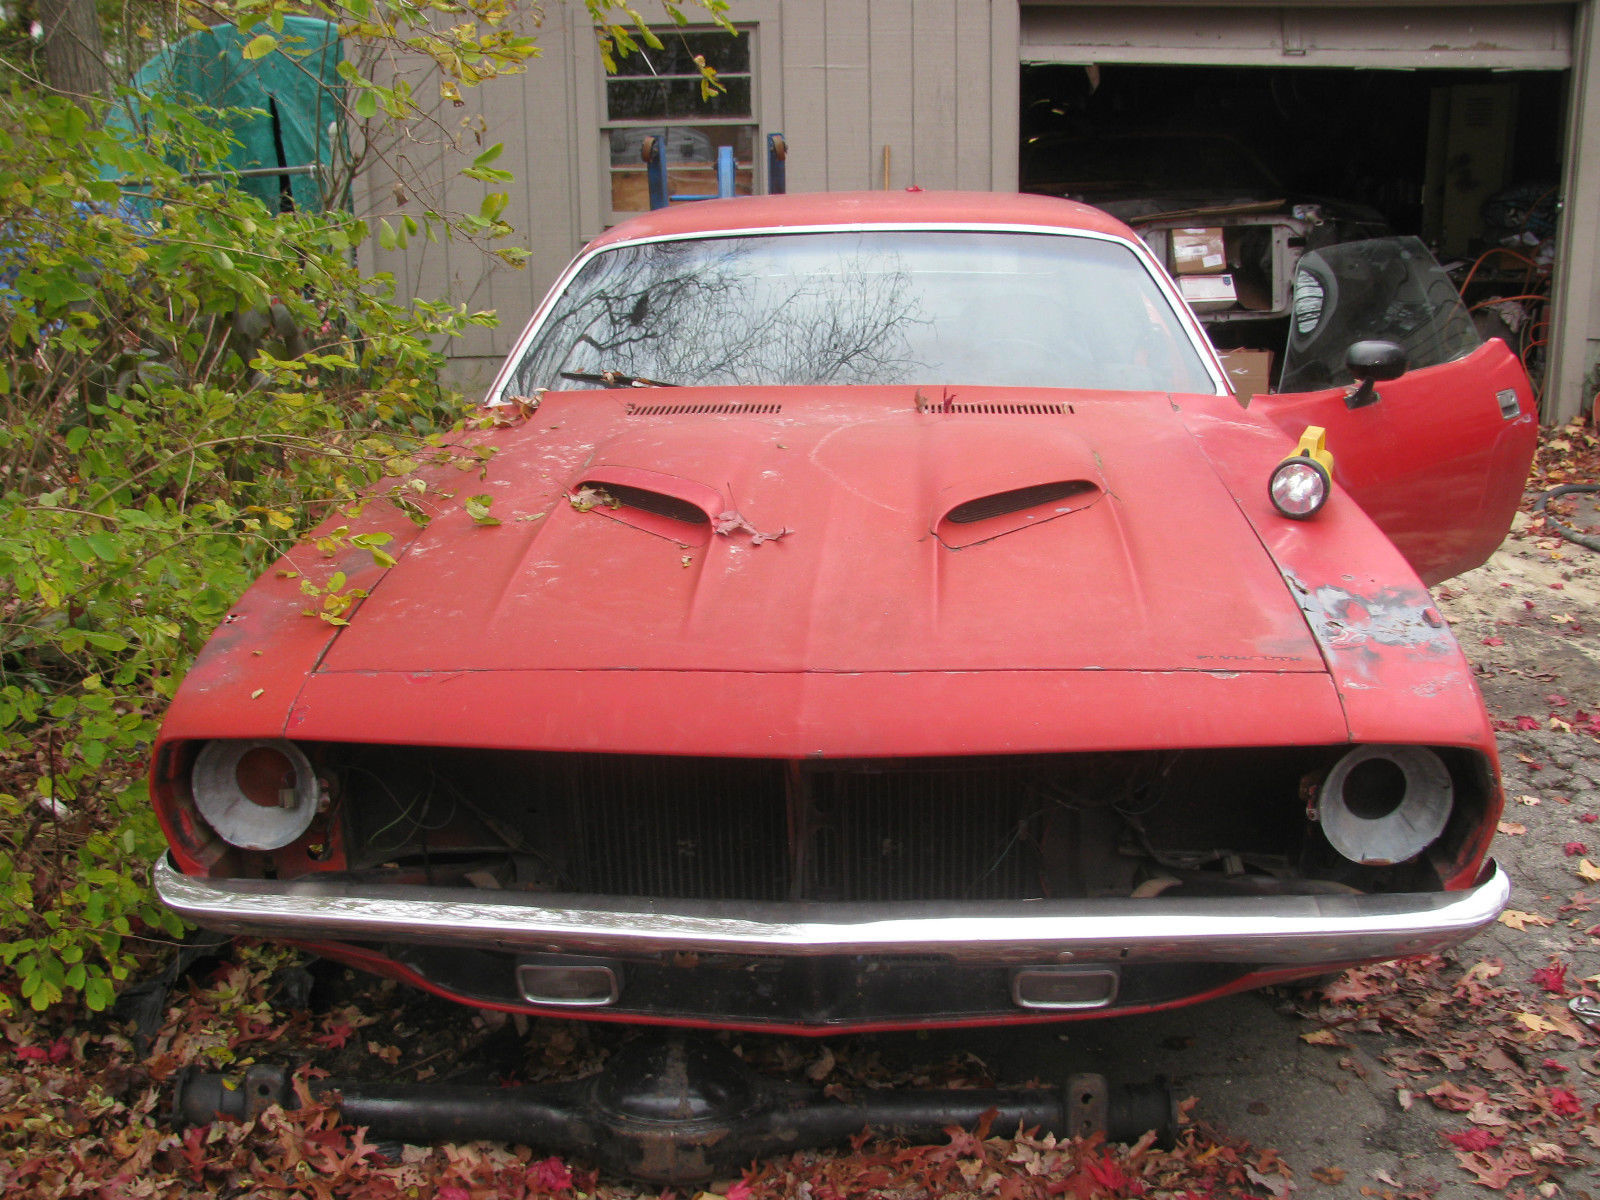 1972 plymouth cuda 340 4 speed project - Classic Plymouth